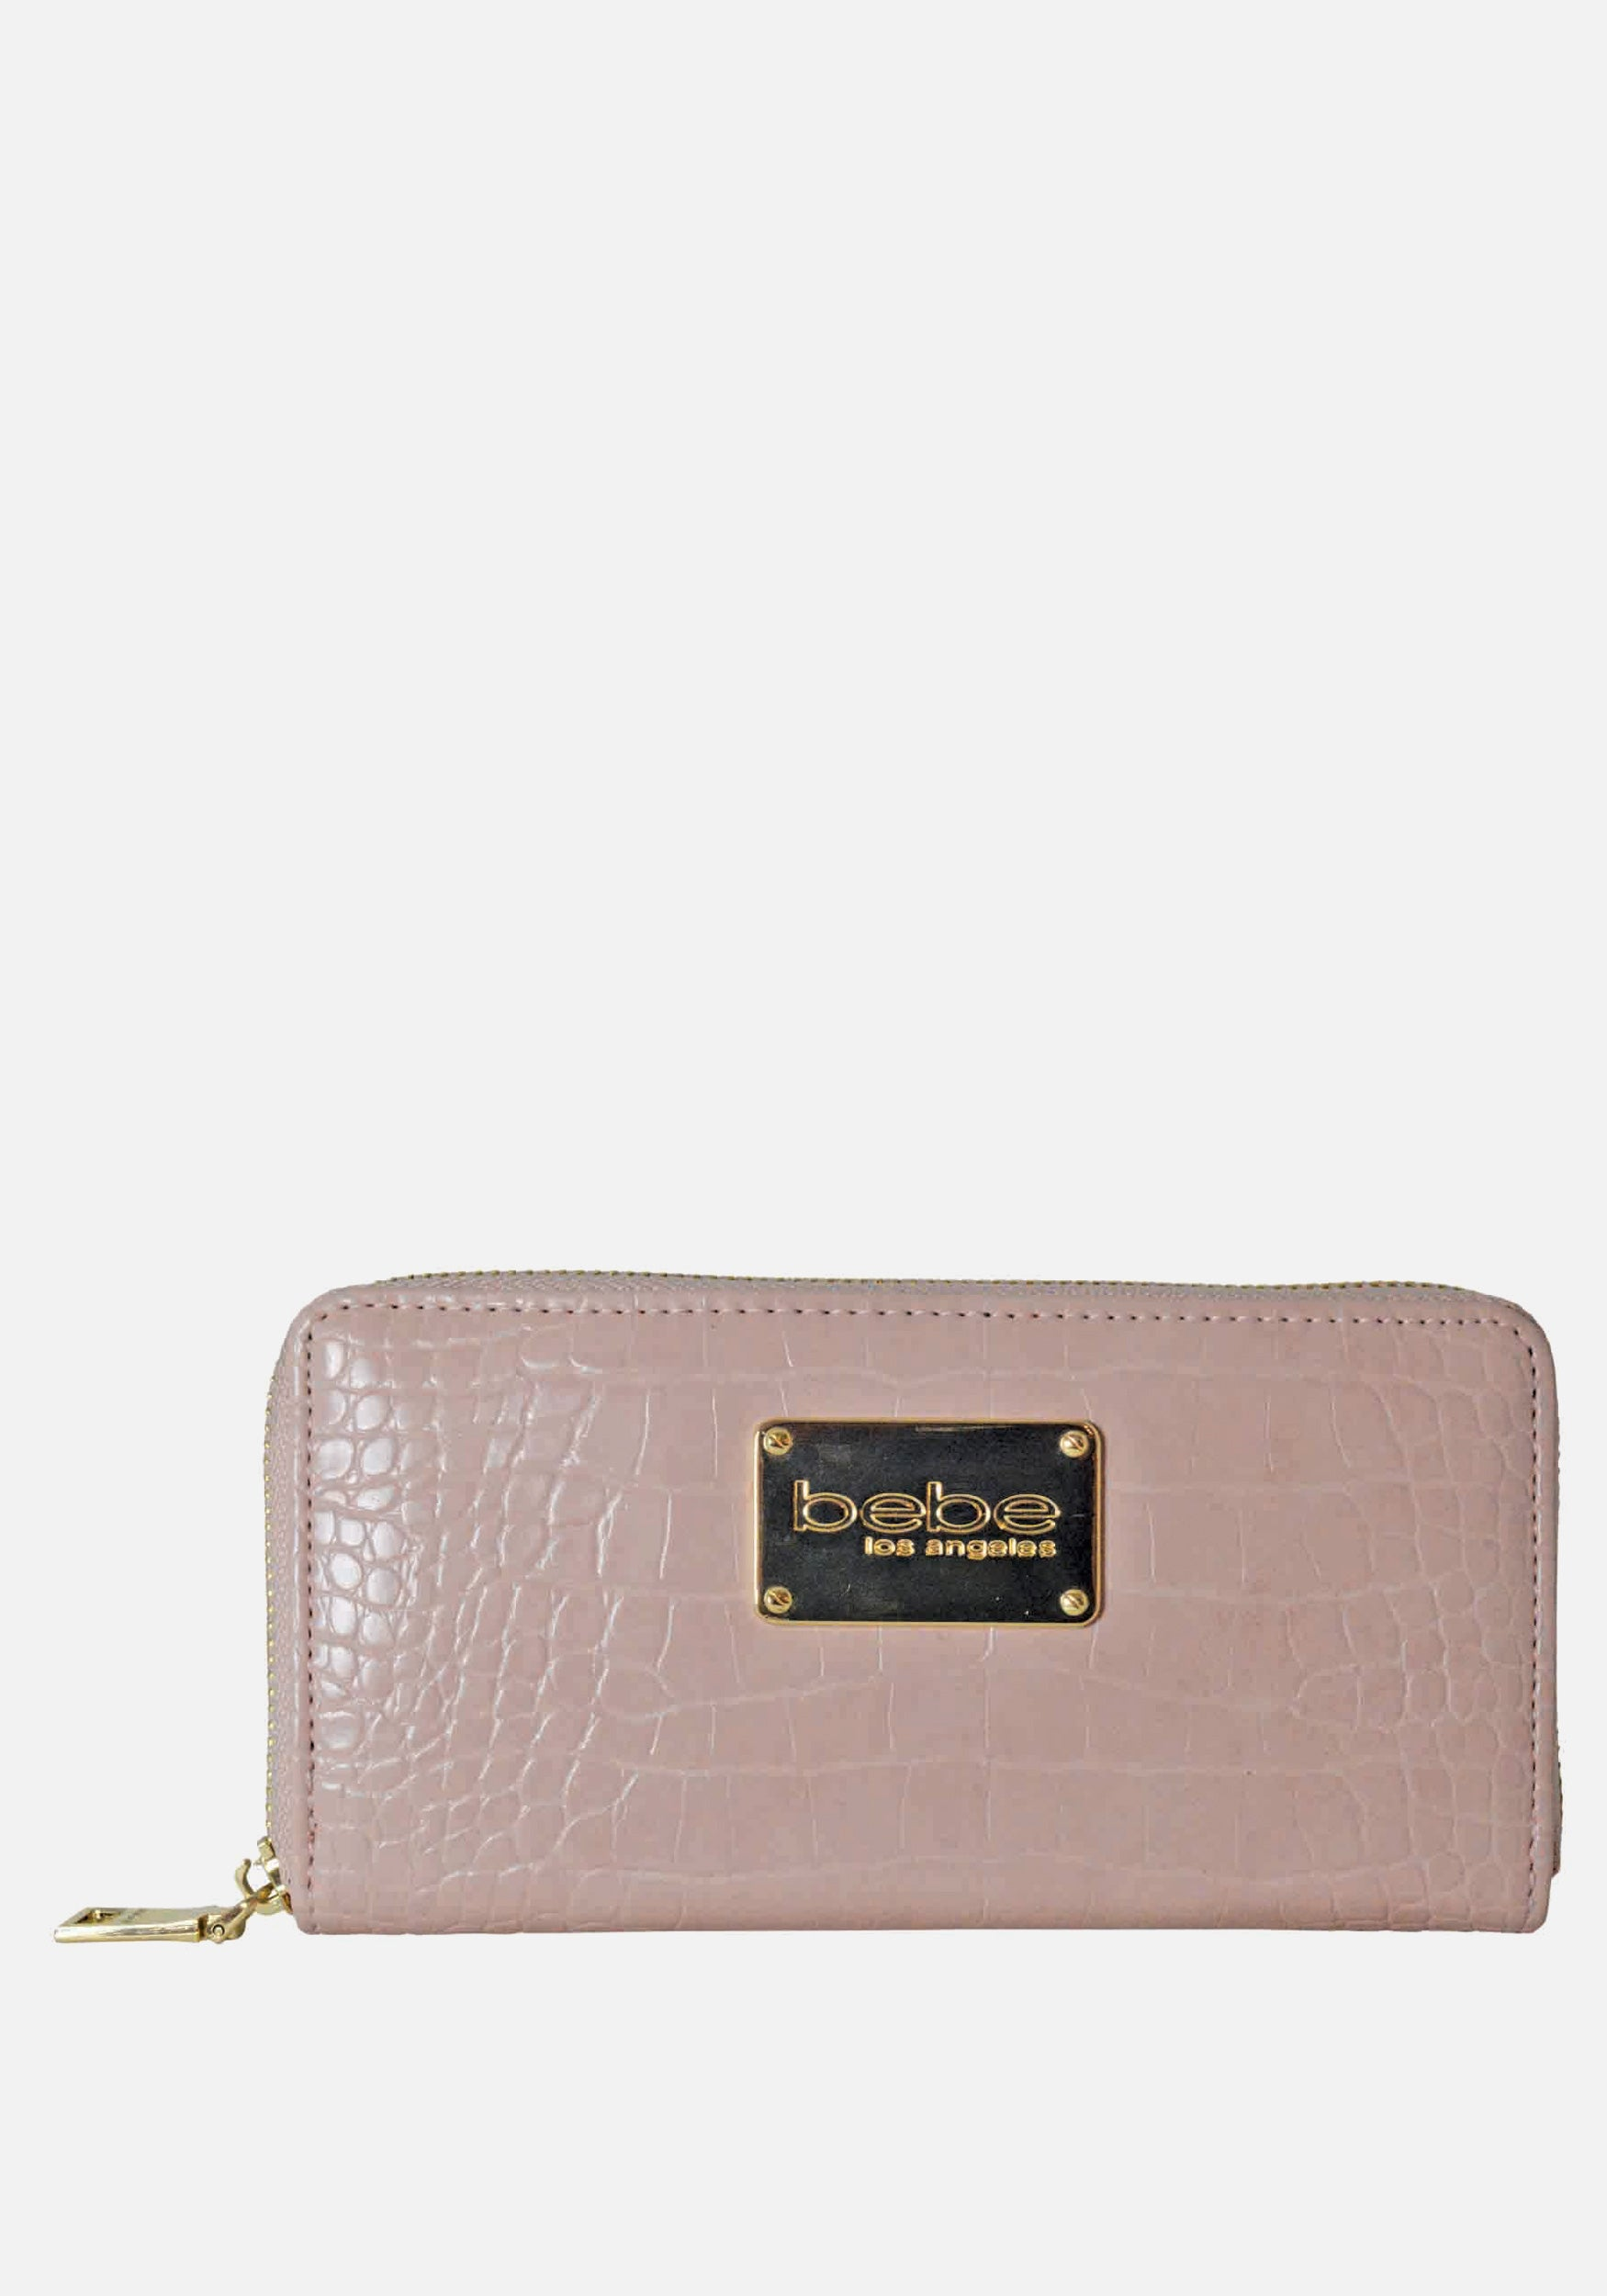 Bebe Women's Natalia Croco Wallet in Dusty Pink Polyester